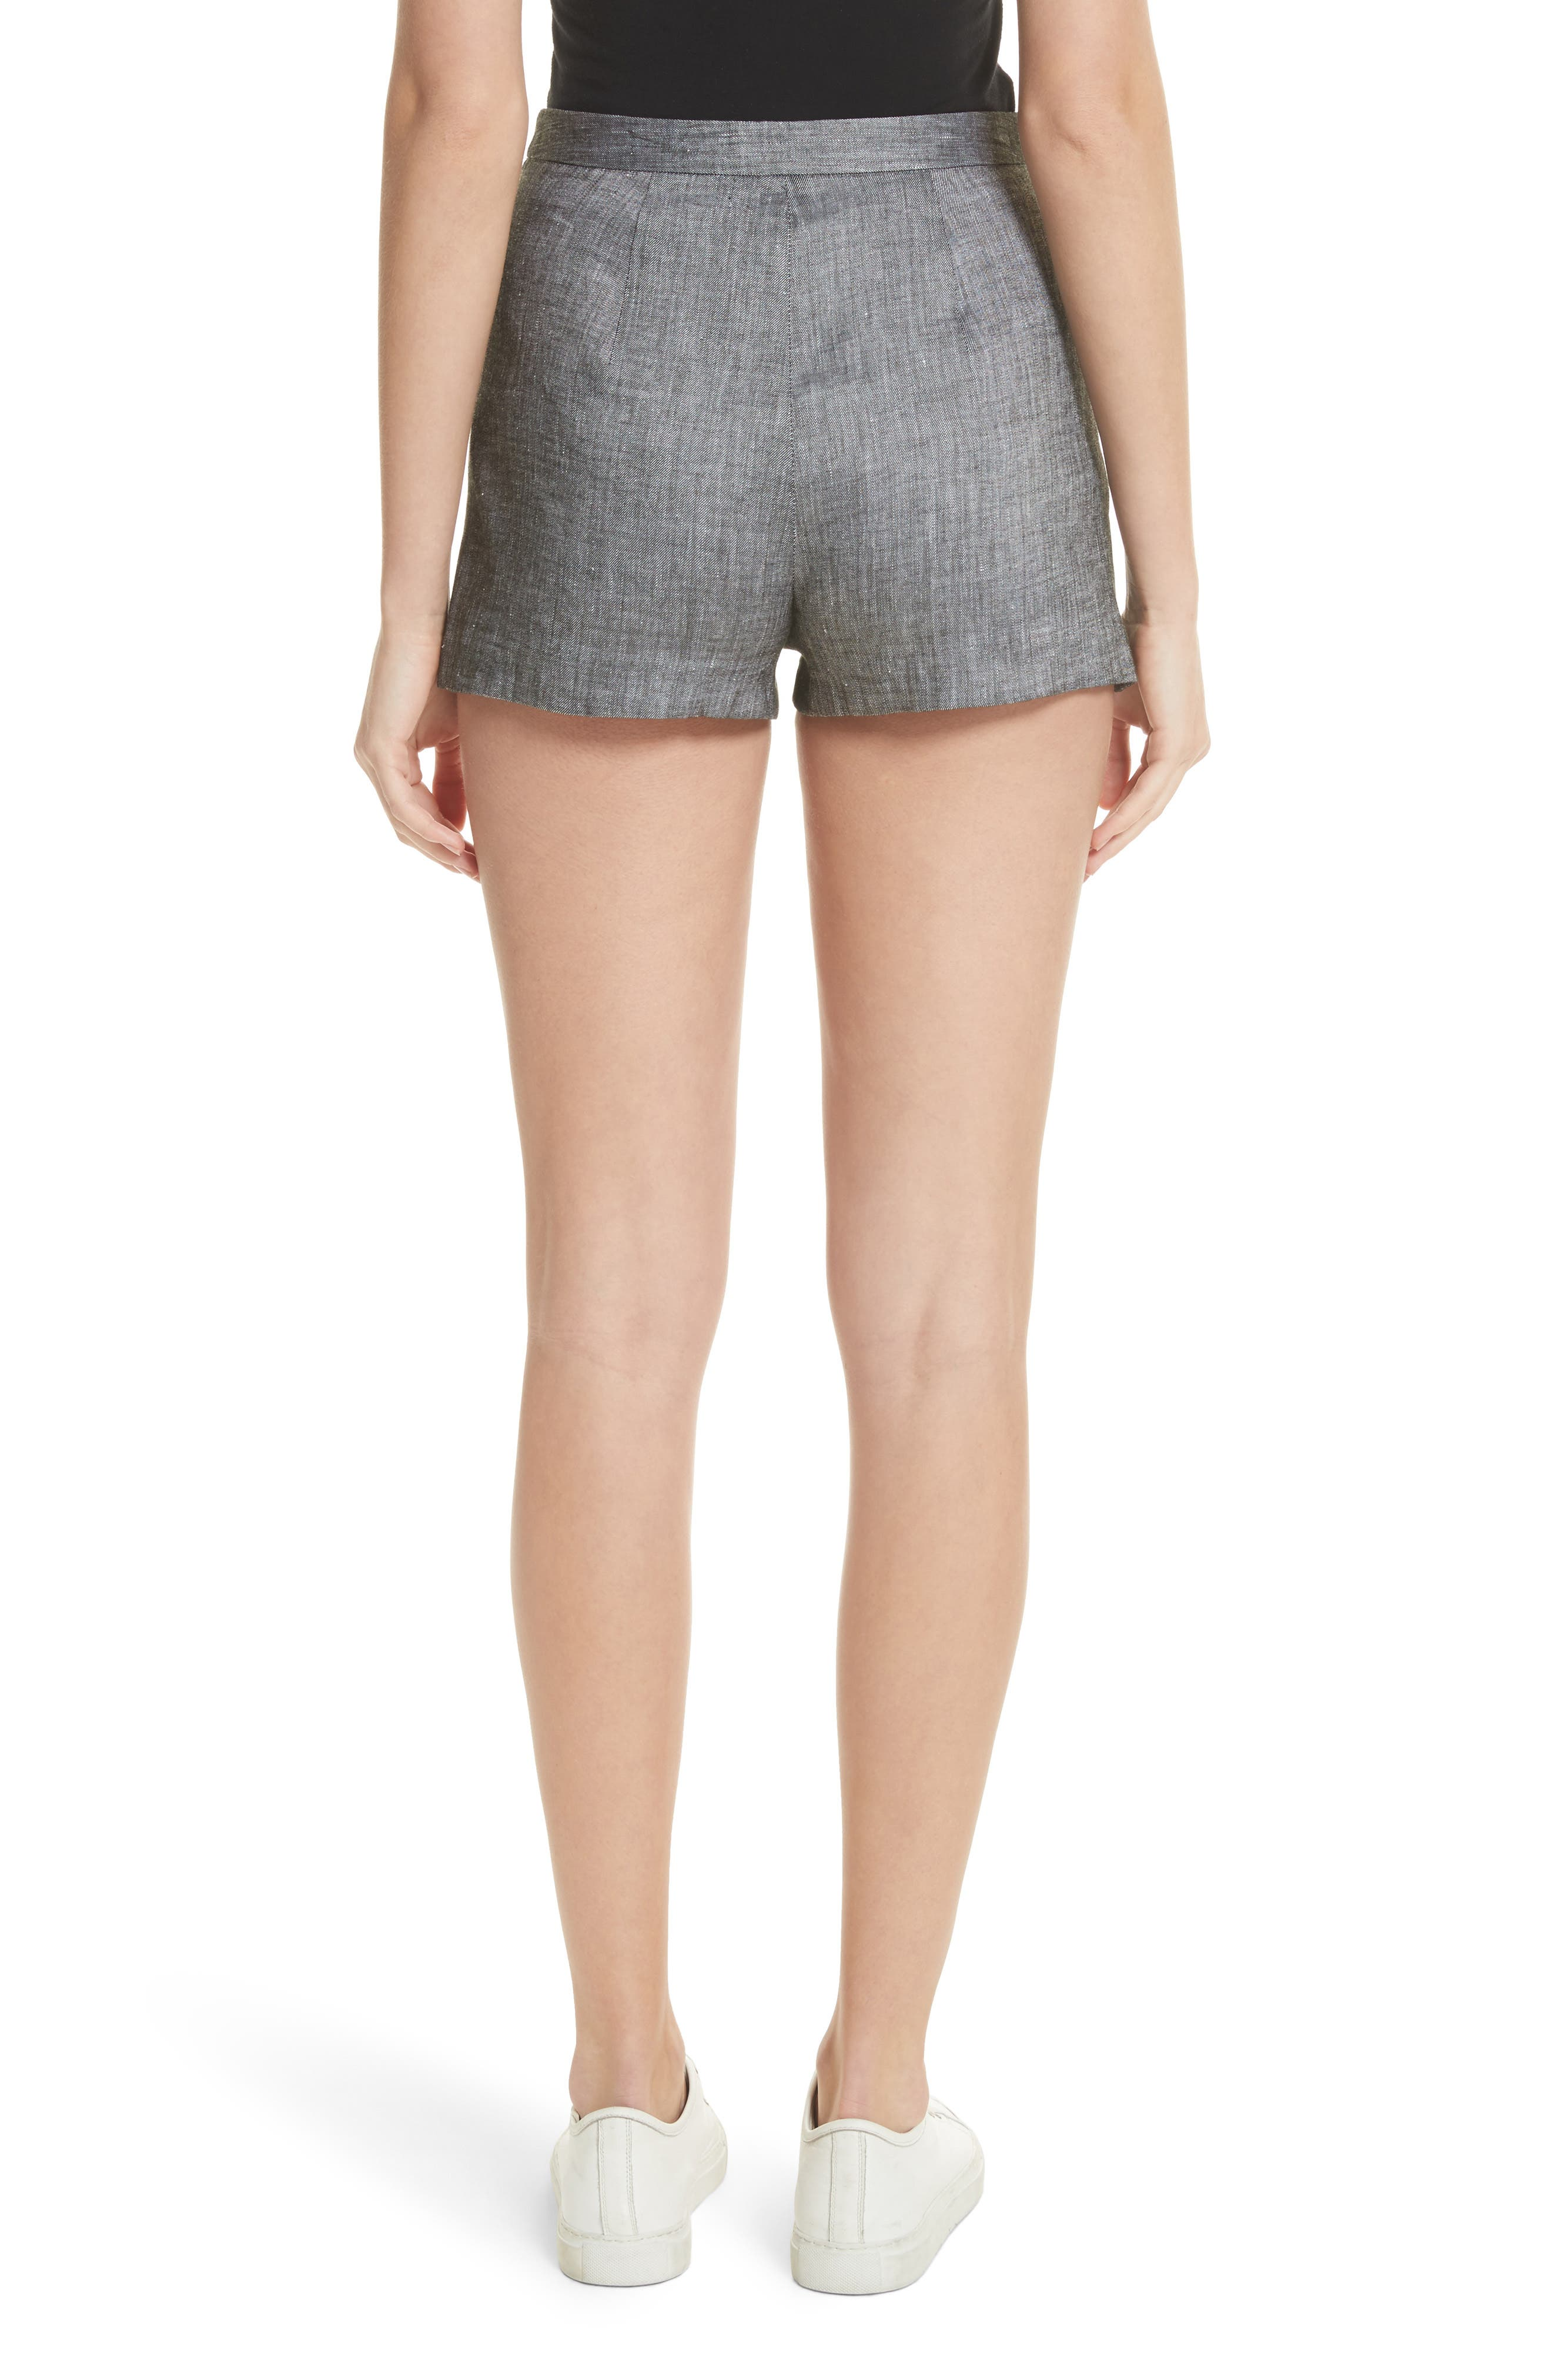 Trudee High Waist Shorts,                             Alternate thumbnail 2, color,                             Olive